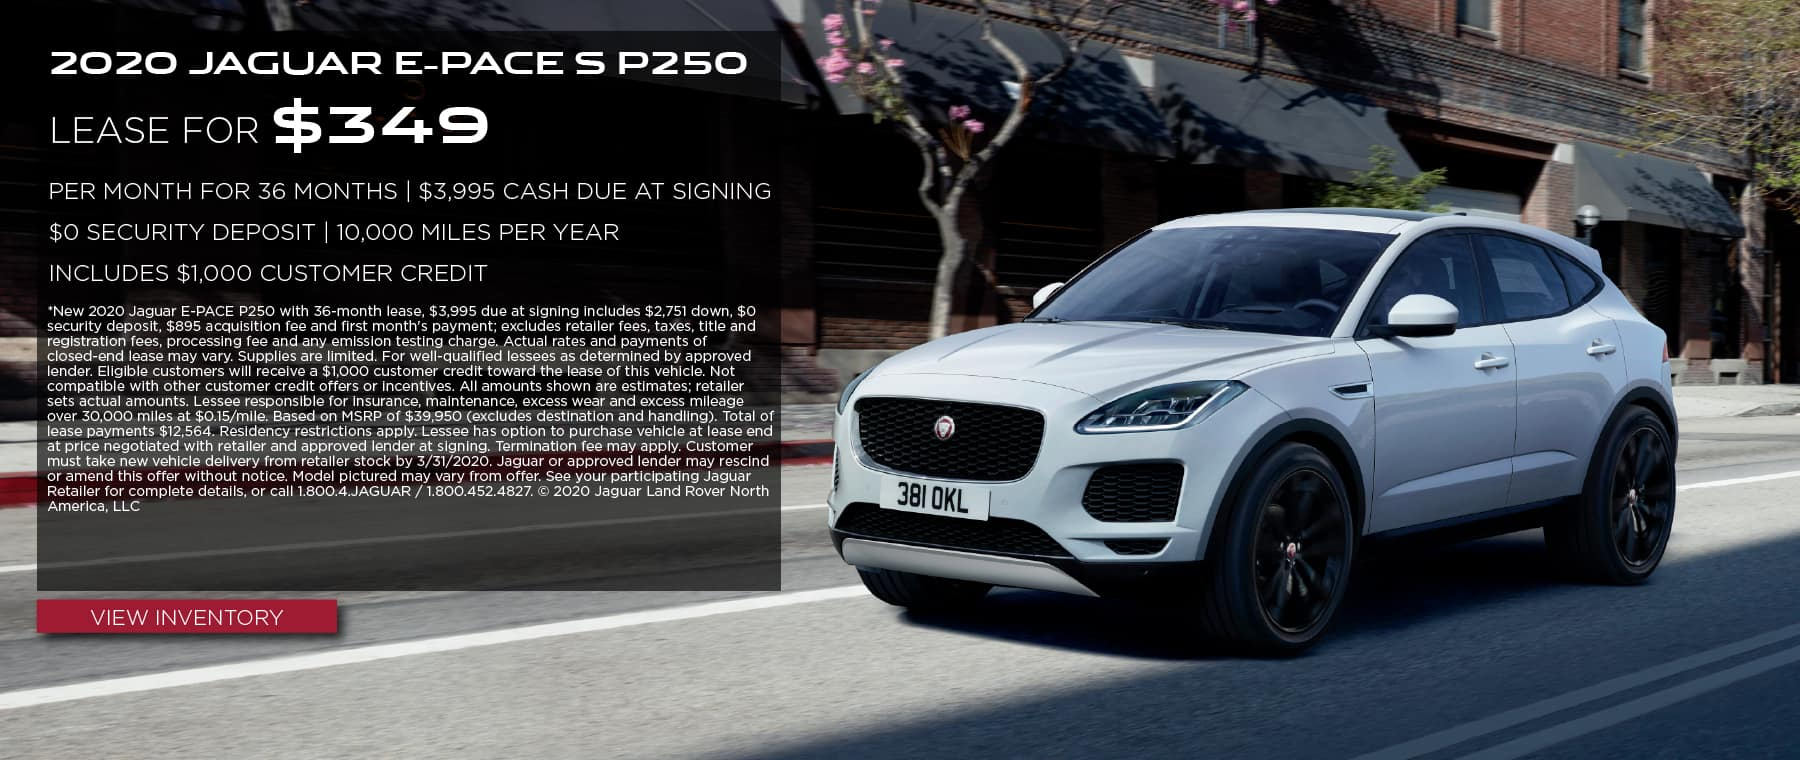 2020 JAGUAR E-PACE P250. $349 PER MONTH. 36 MONTH LEASE TERM. $3,995 CASH DUE AT SIGNING. INCLUDES $1,000 CUSTOMER CREDIT. $0 SECURITY DEPOSIT. 10,000 MILES PER YEAR. OFFER ENDS 3/31/2020. VIEW INVENTORY. WHITE JAGUAR E-PACE DRIVING THROUGH CITY.